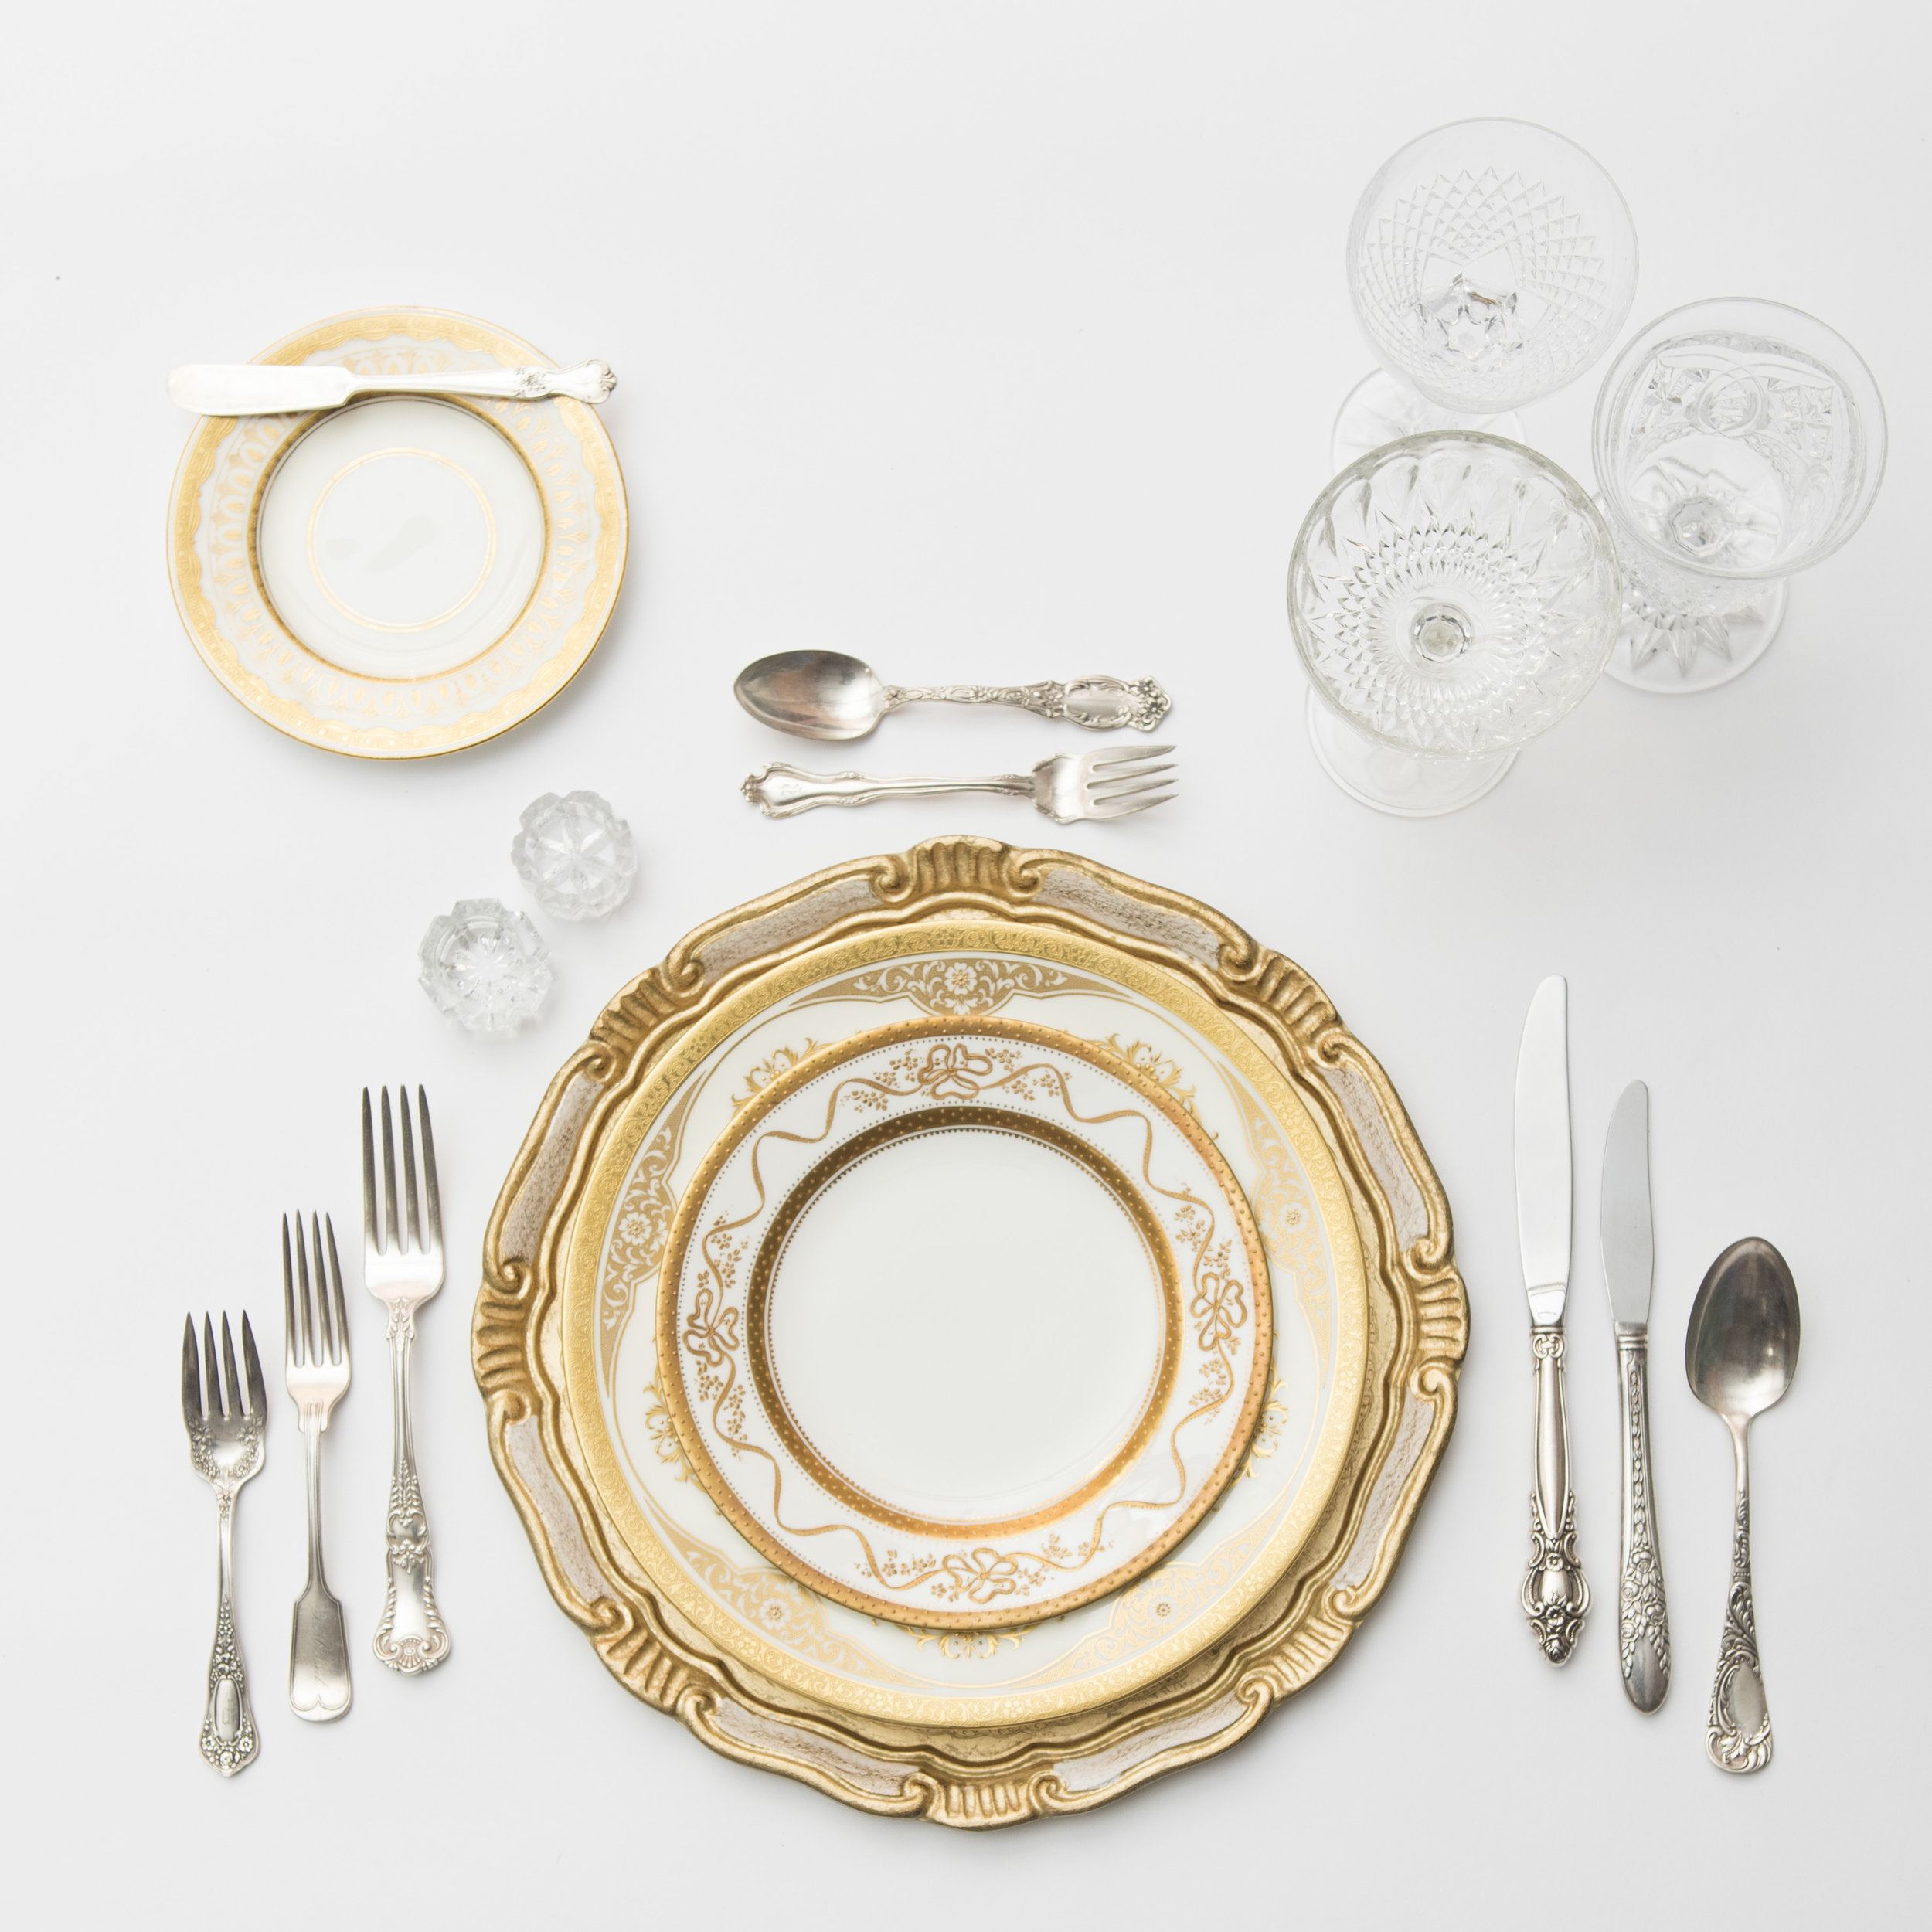 RENT: Florentine Chargers in White/Gold + Crown Gold Collection Collection Vintage China + Antique Silver Flatware + Vintage Cut Crystal Goblets + Early American Pressed Glass Goblets + Vintage Champagne Coupes + Antique Crystal Salt Cellars  SHOP:Florentine Chargers in White/Gold